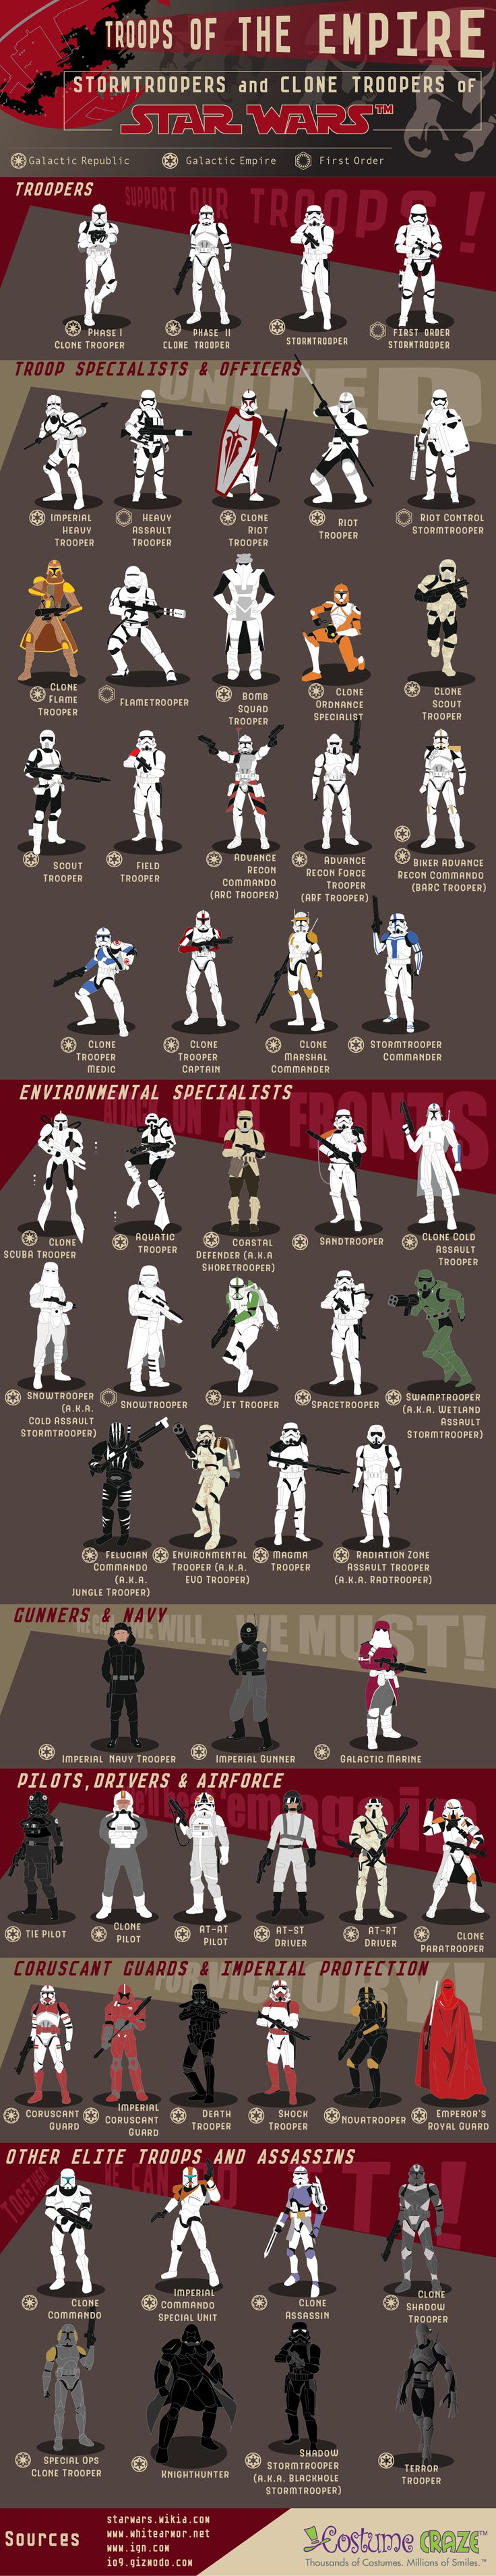 60 Stormtroopers and Clone Troopers of Star Wars #infographic #Starwars #Entertainment